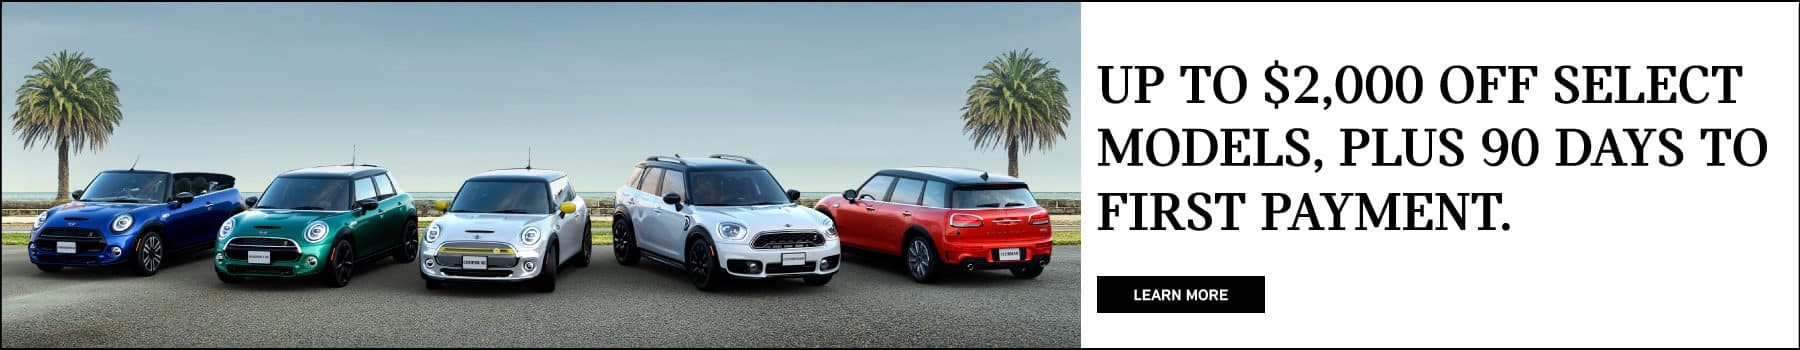 MINI Family. Up to $2,000 off select MINI models plus 90 days to your first payment.